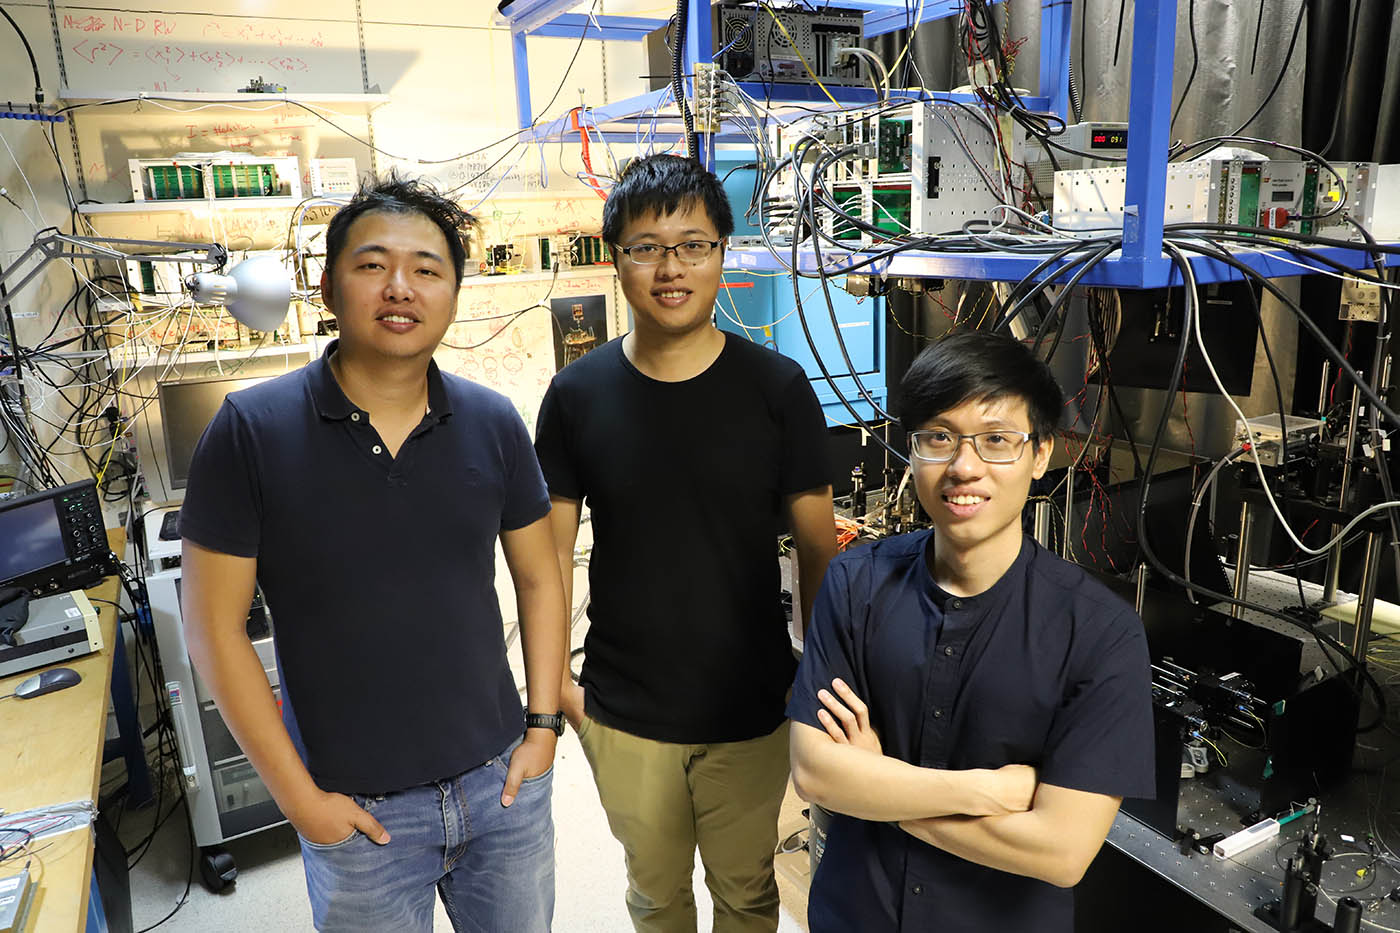 Three researchers in a laboratory at the Centre for Quantum Technologies in Singapore.